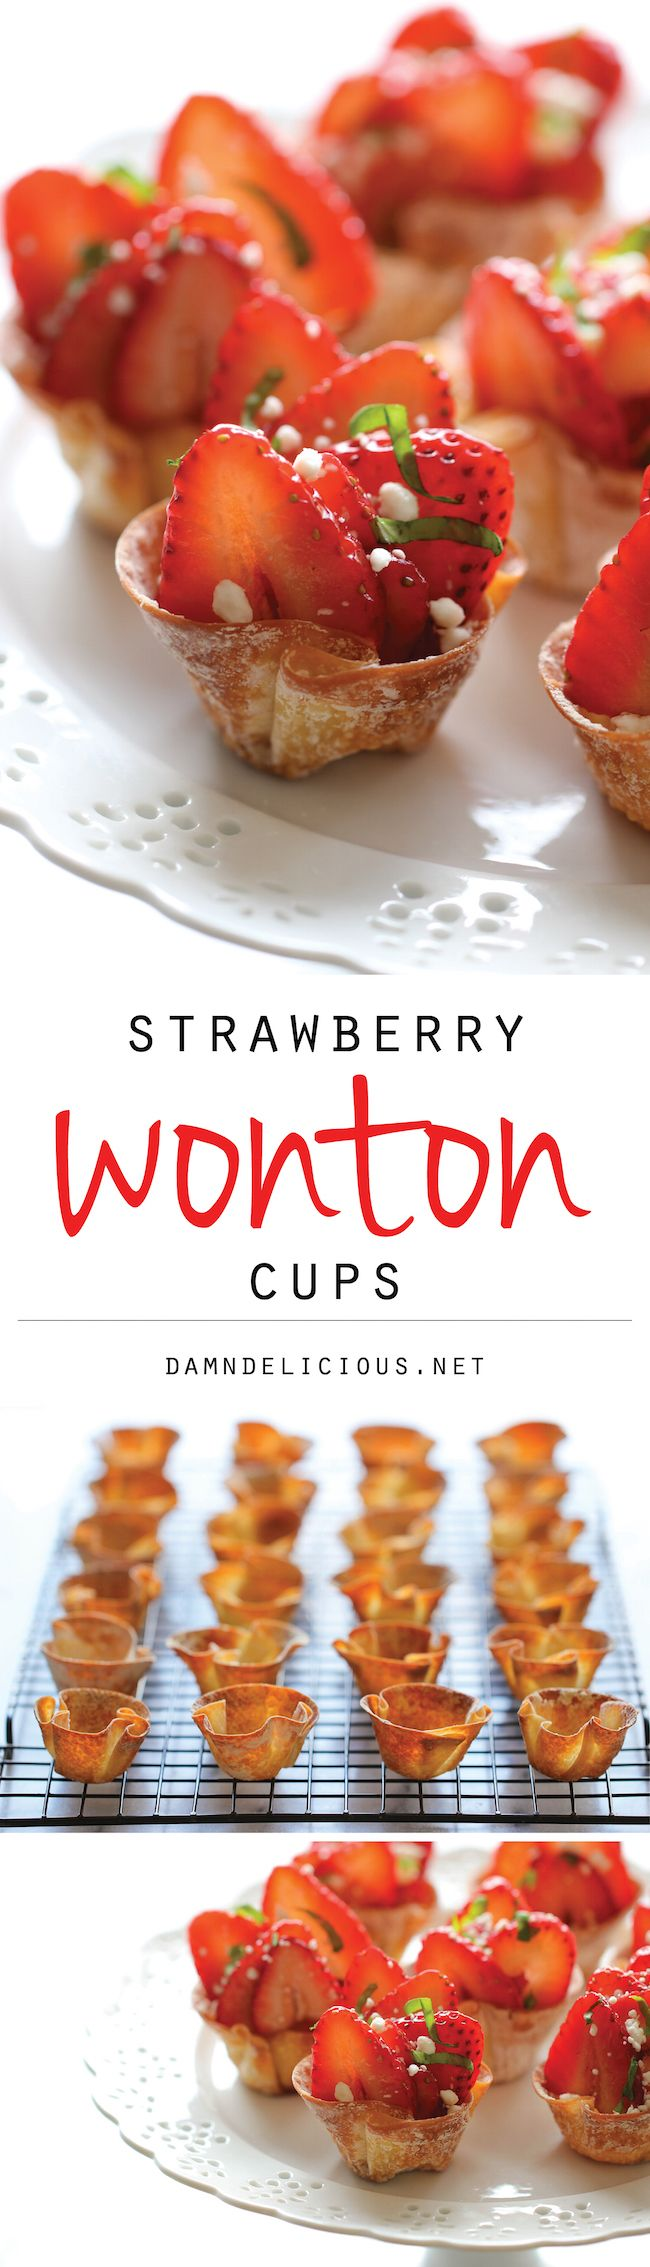 Strawberry Wonton Cups - These elegant wonton cups come together so quickly and easily, and you can even make them ahead of time. Perfect for Valentines Day!